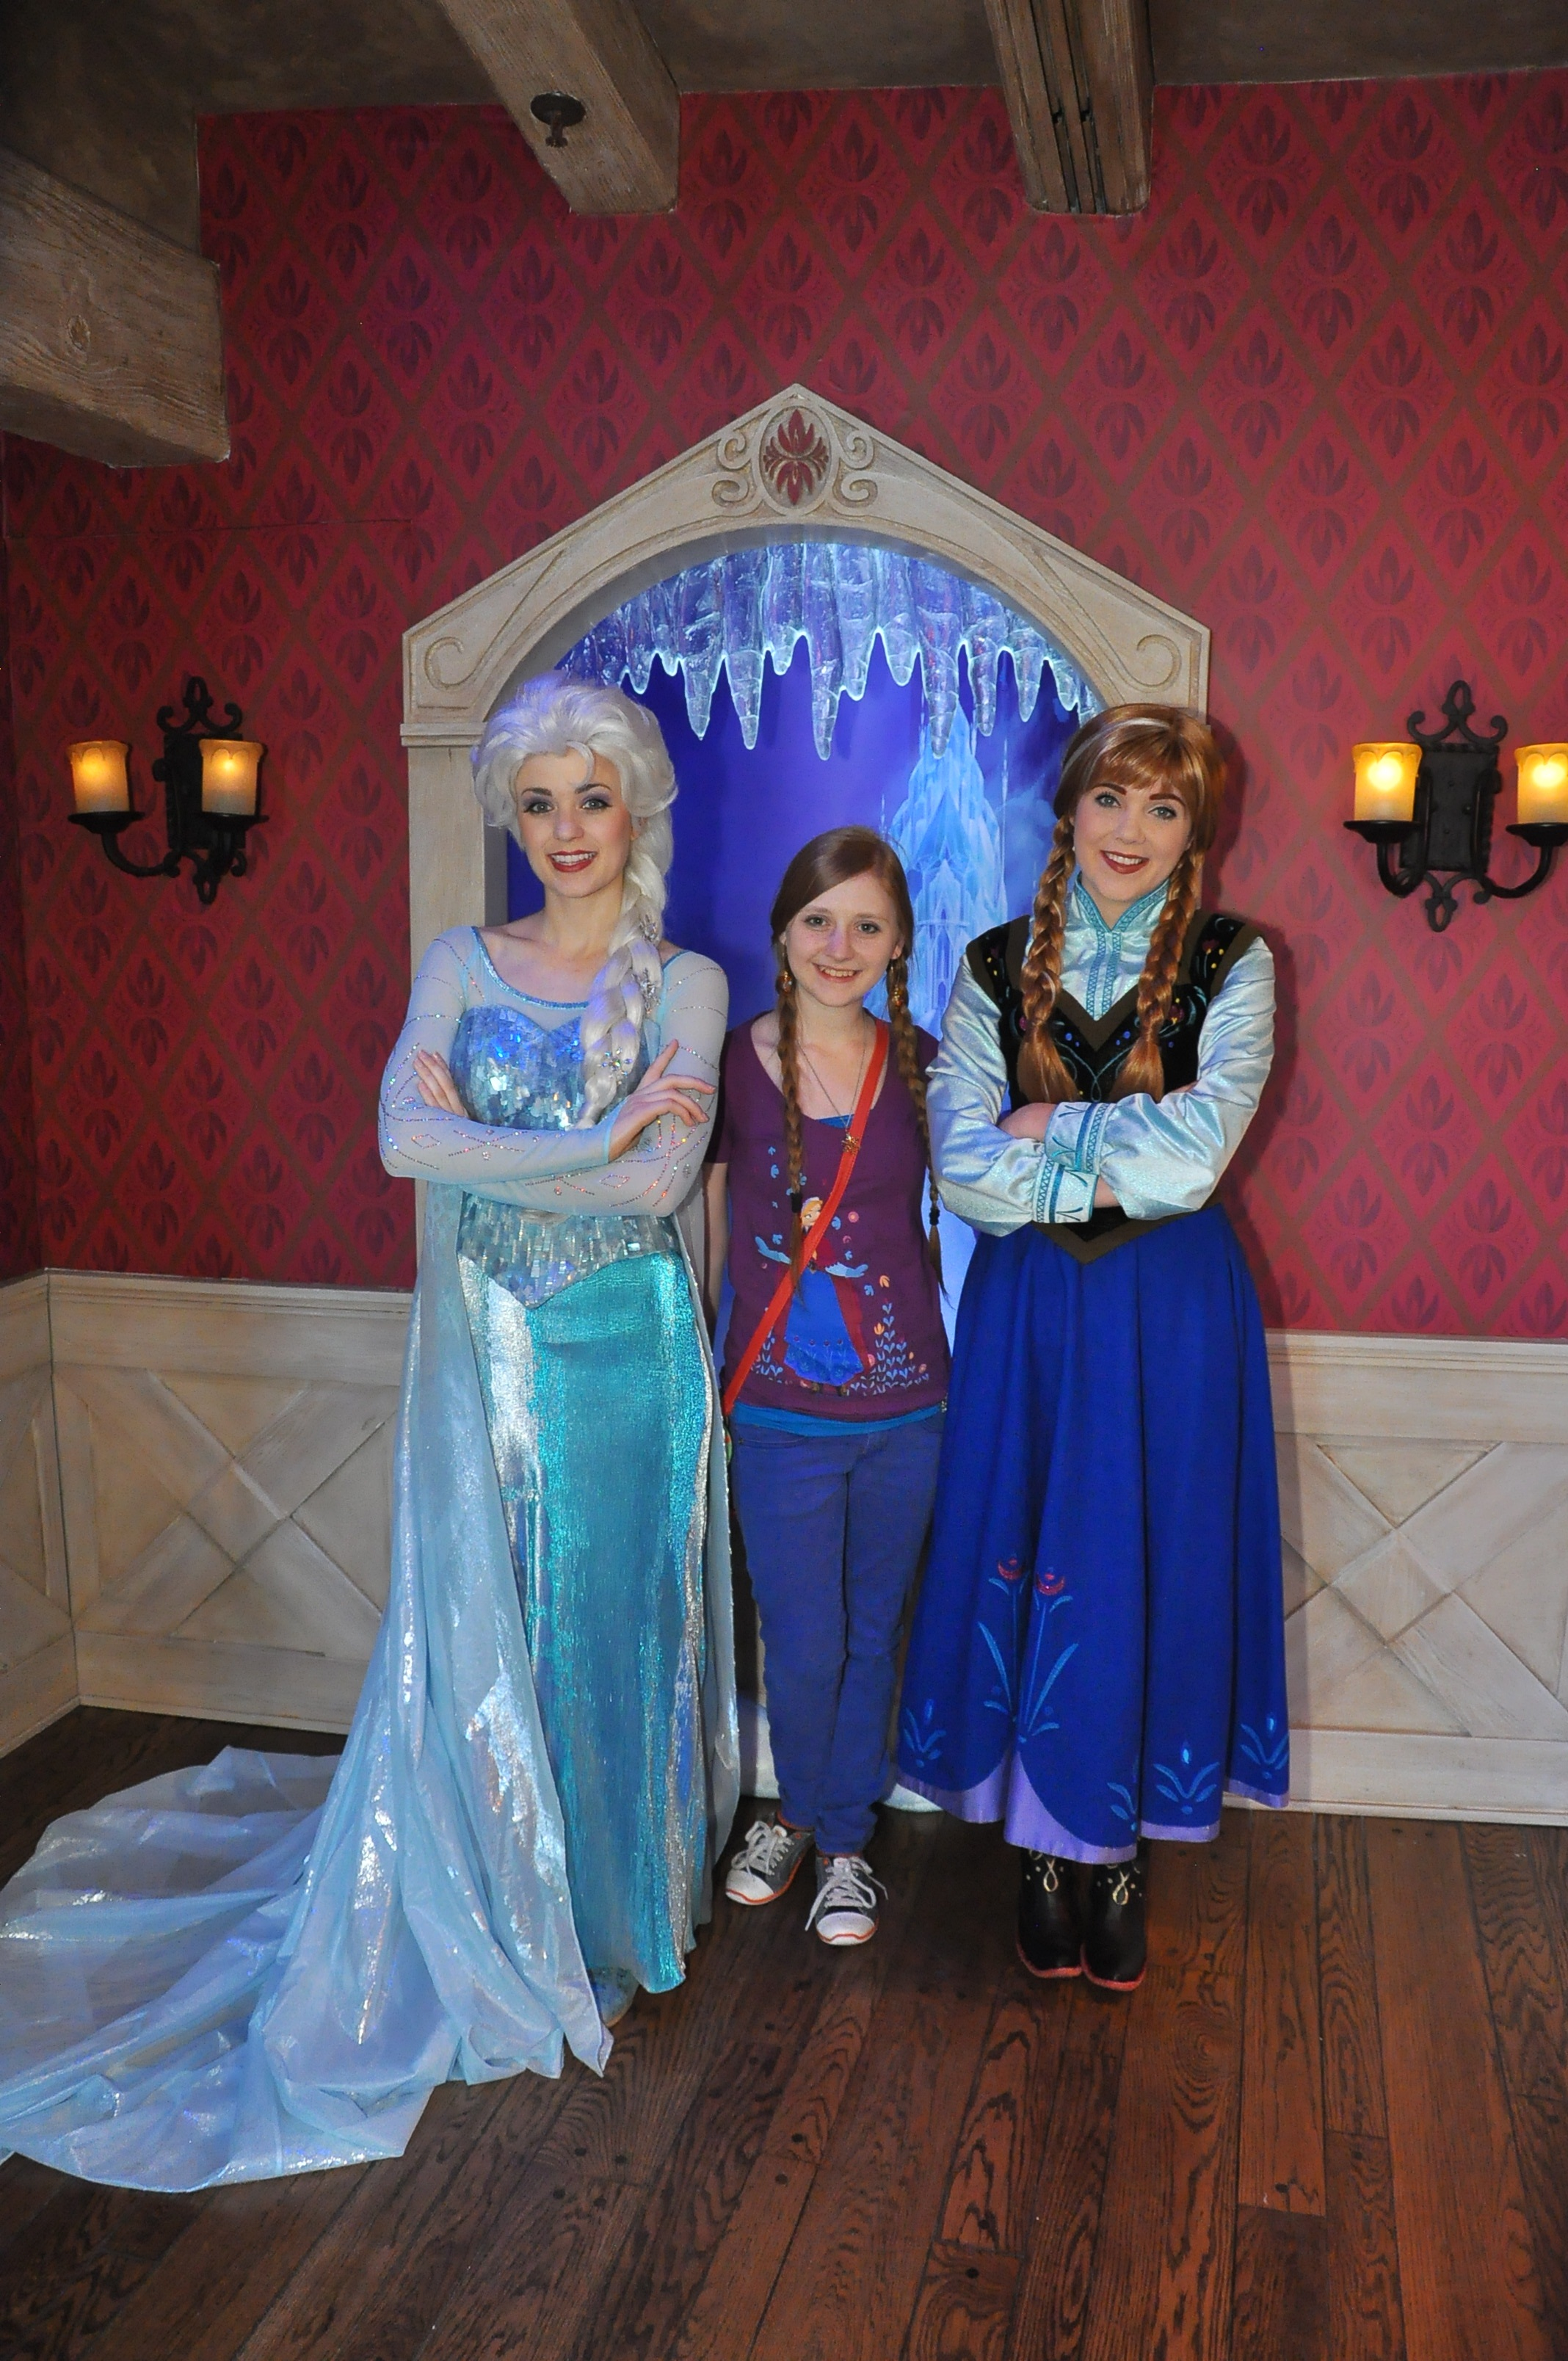 Frozens Anna And Elsa Meet And Greet At Disneyland Is It Really